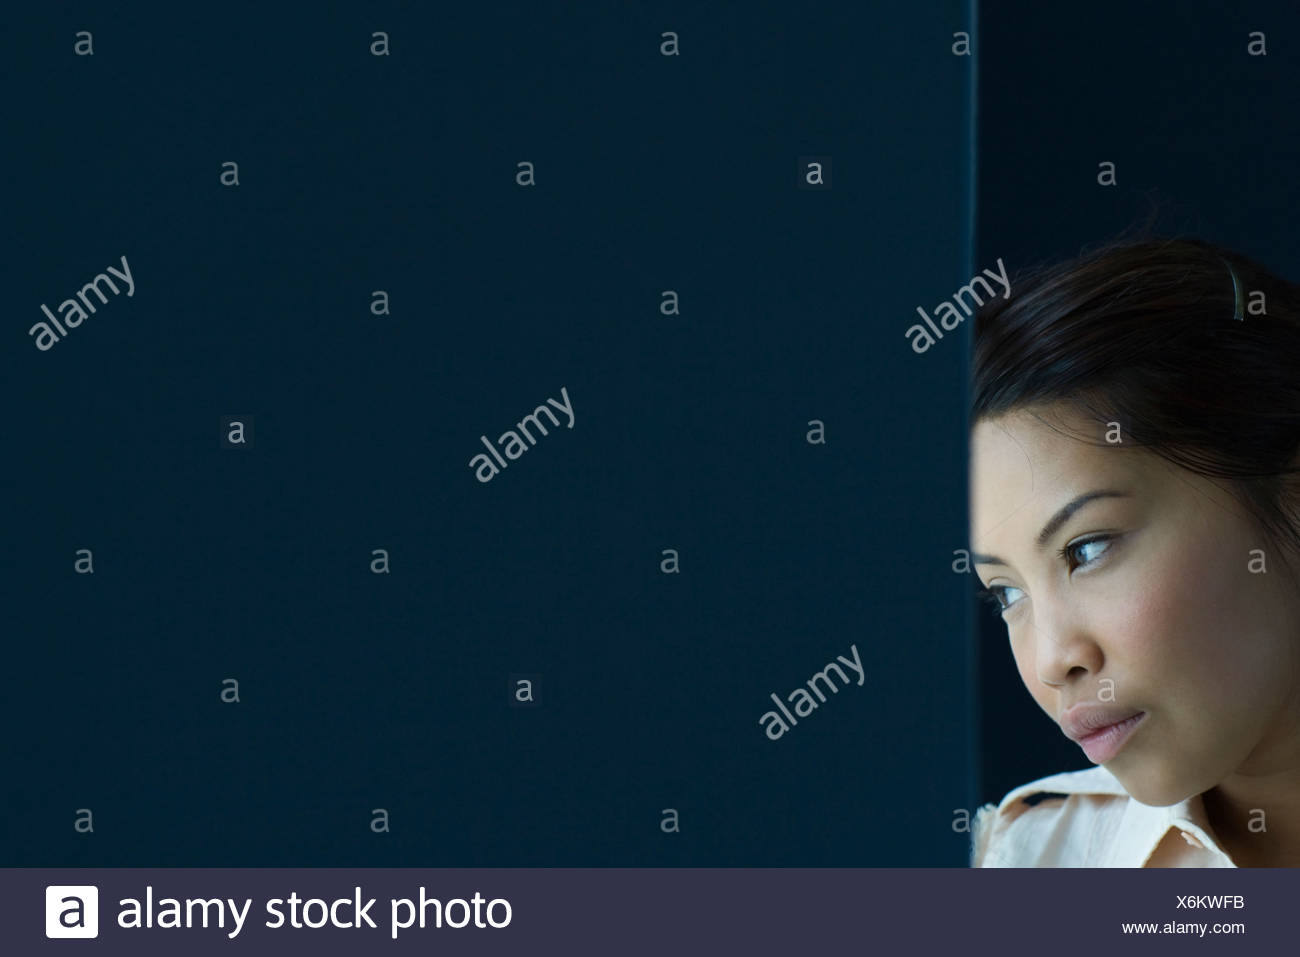 Woman daydreaming - Stock Image